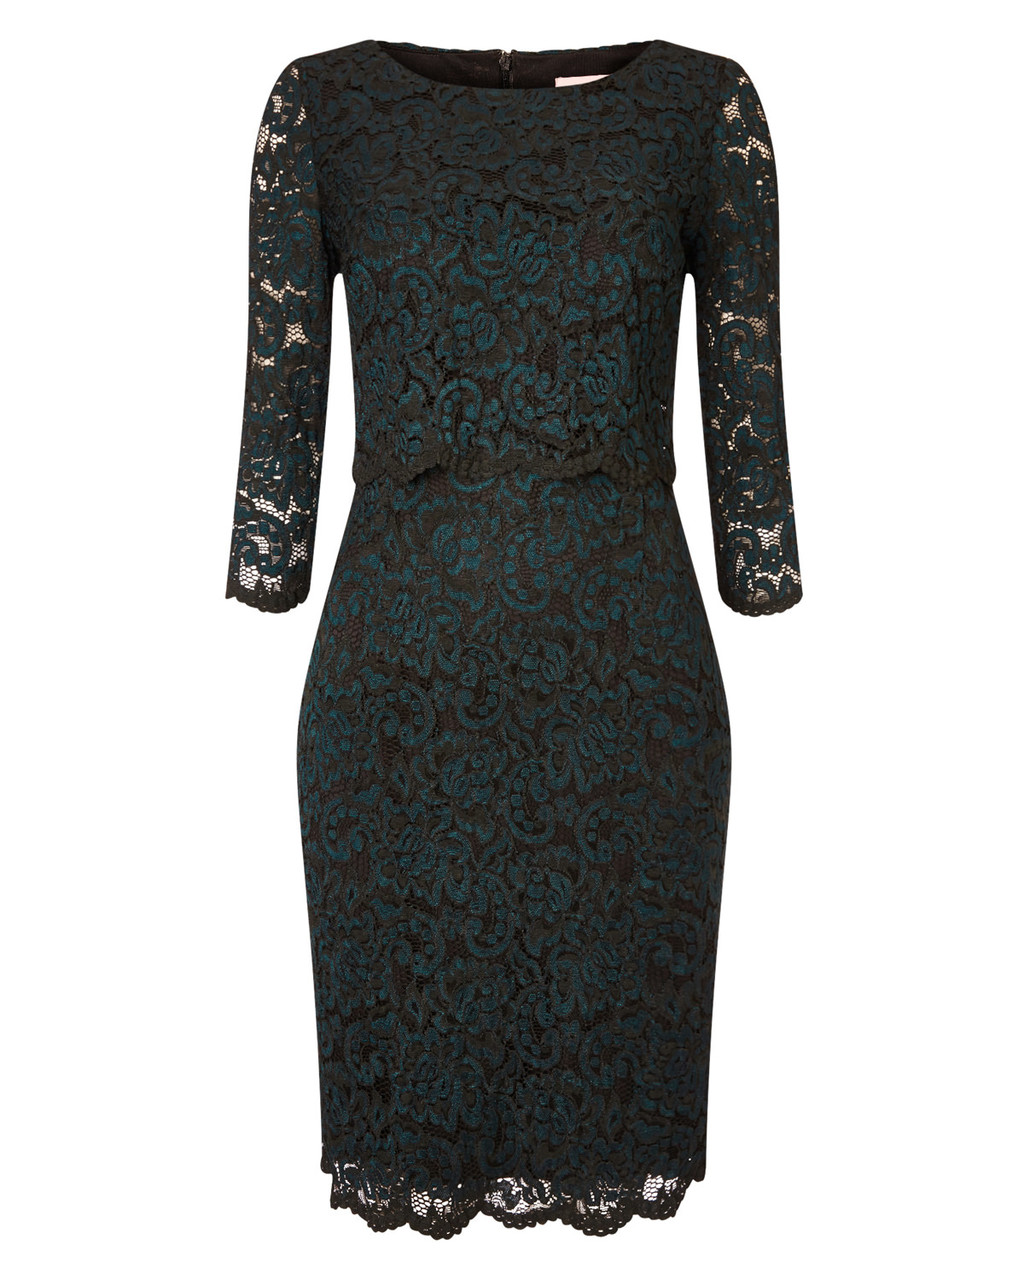 Keke Lace Dress - style: shift; hip detail: fitted at hip; predominant colour: teal; length: on the knee; fit: body skimming; fibres: nylon - mix; occasions: occasion; neckline: crew; sleeve length: 3/4 length; sleeve style: standard; texture group: lace; pattern type: fabric; pattern: patterned/print; embellishment: lace; season: a/w 2015; wardrobe: event